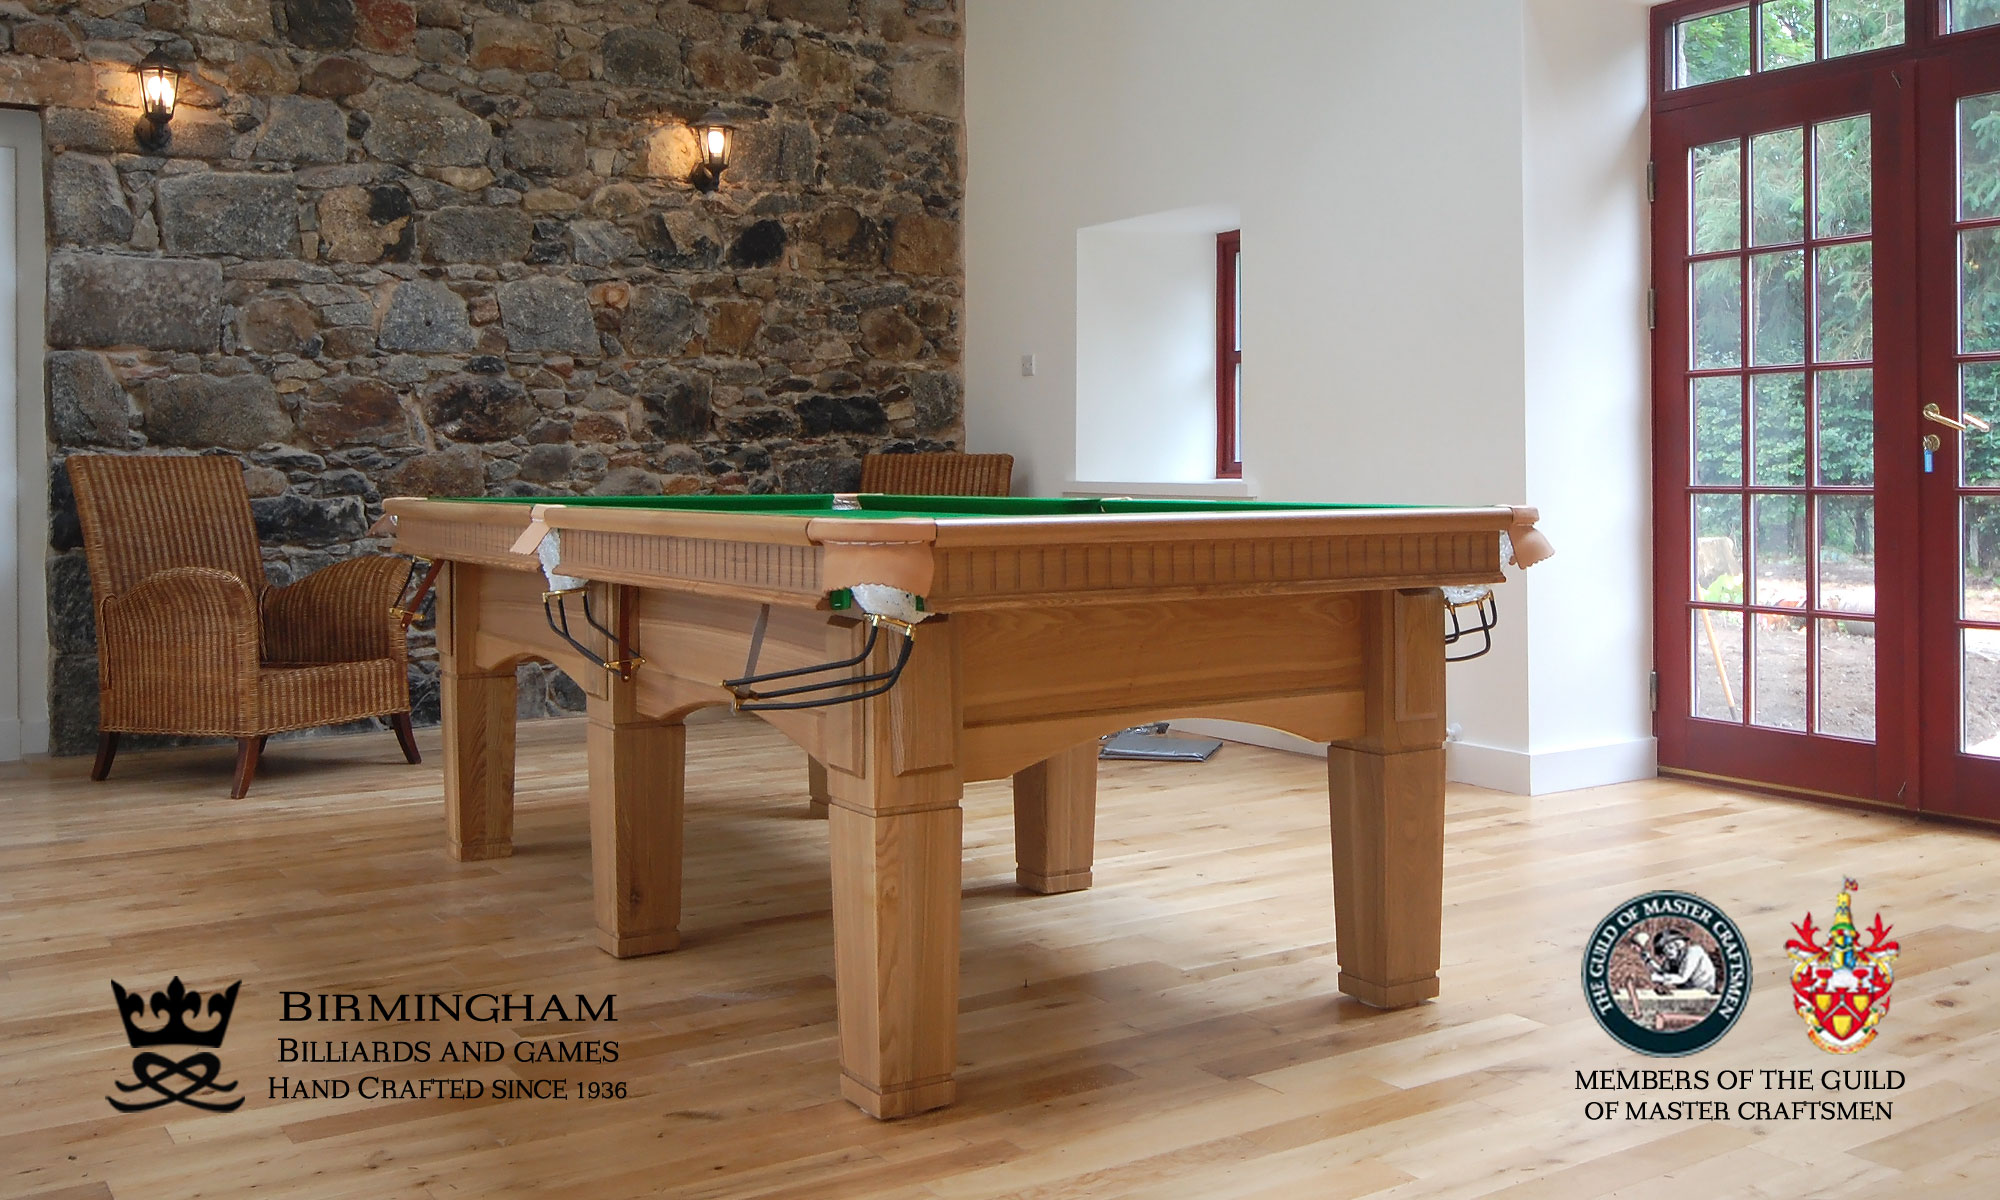 The Contemporary handmade pool table, olive green baize, end view